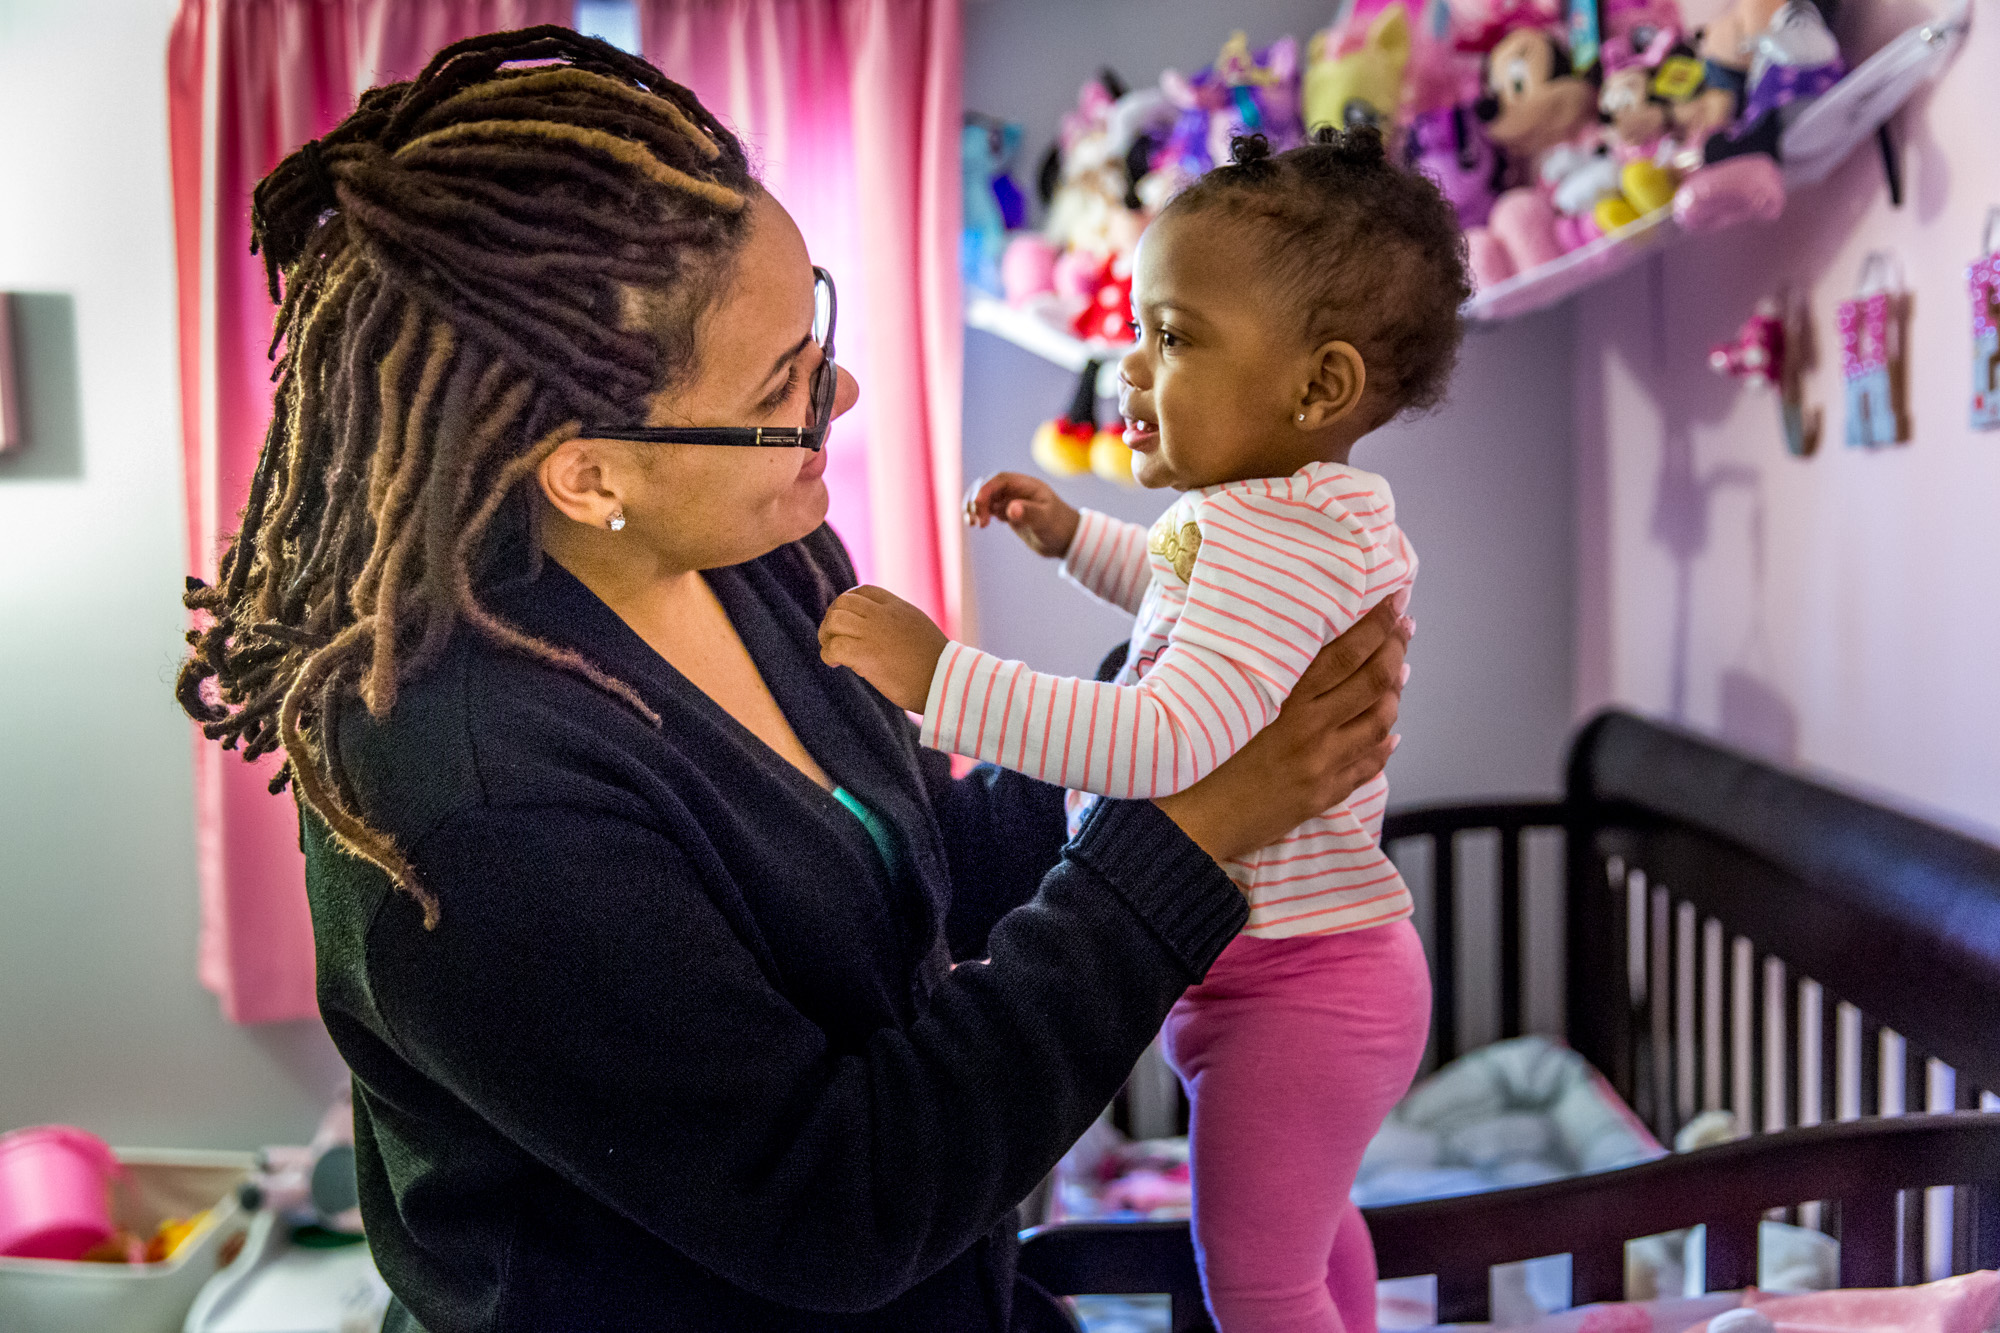 Chanelle Blair missed several months of work after her daughter Chayenne was born, leaving the family financially stretched. She received assistance for diapers from the St. Louis Diaper Bank and Parents as Teachers.